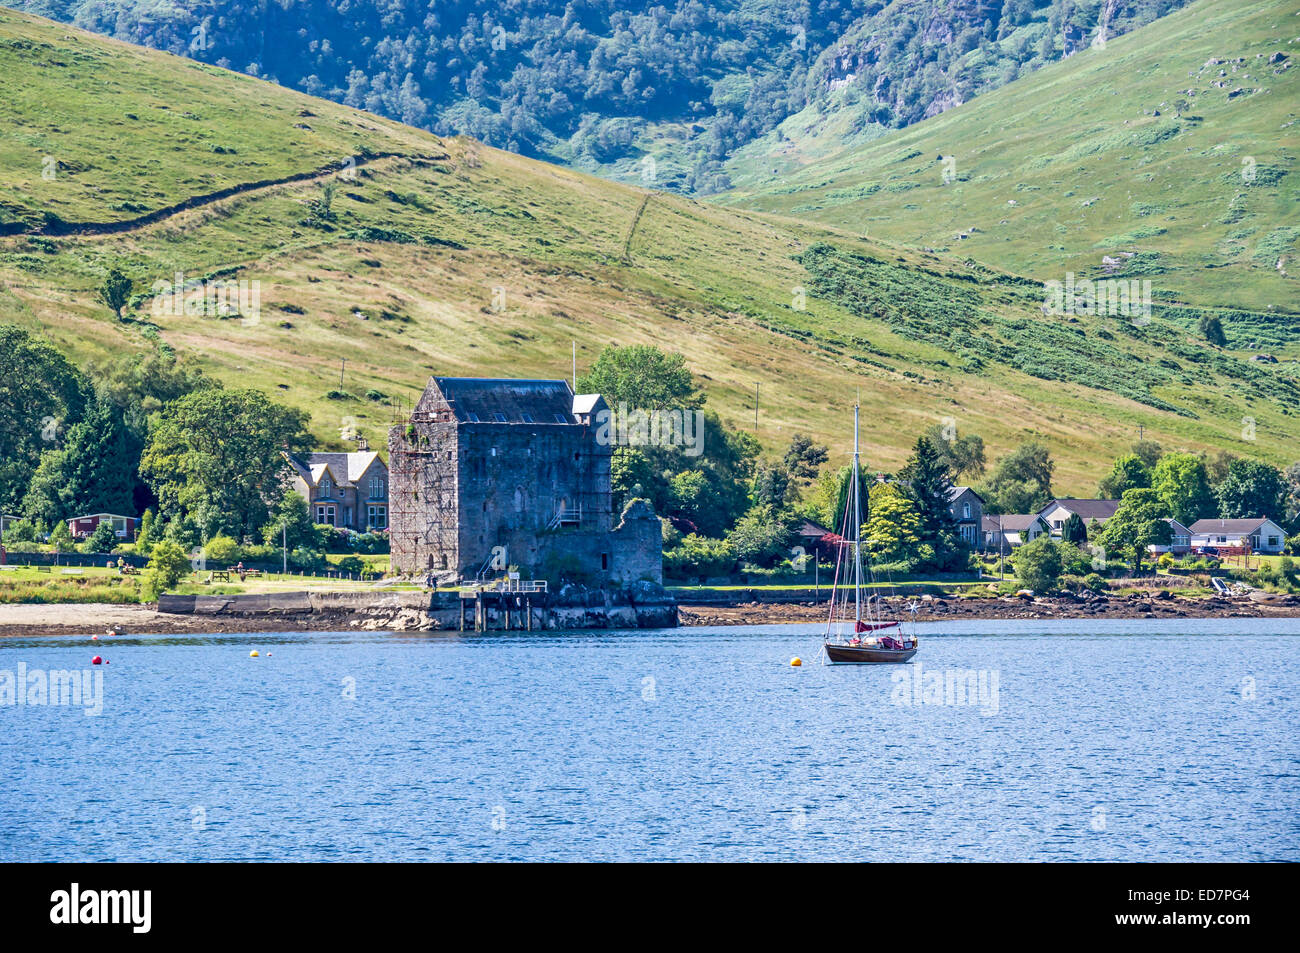 Carrick Castle on the shore of Loch Goil in Argyll and Bute Scotland - Stock Image